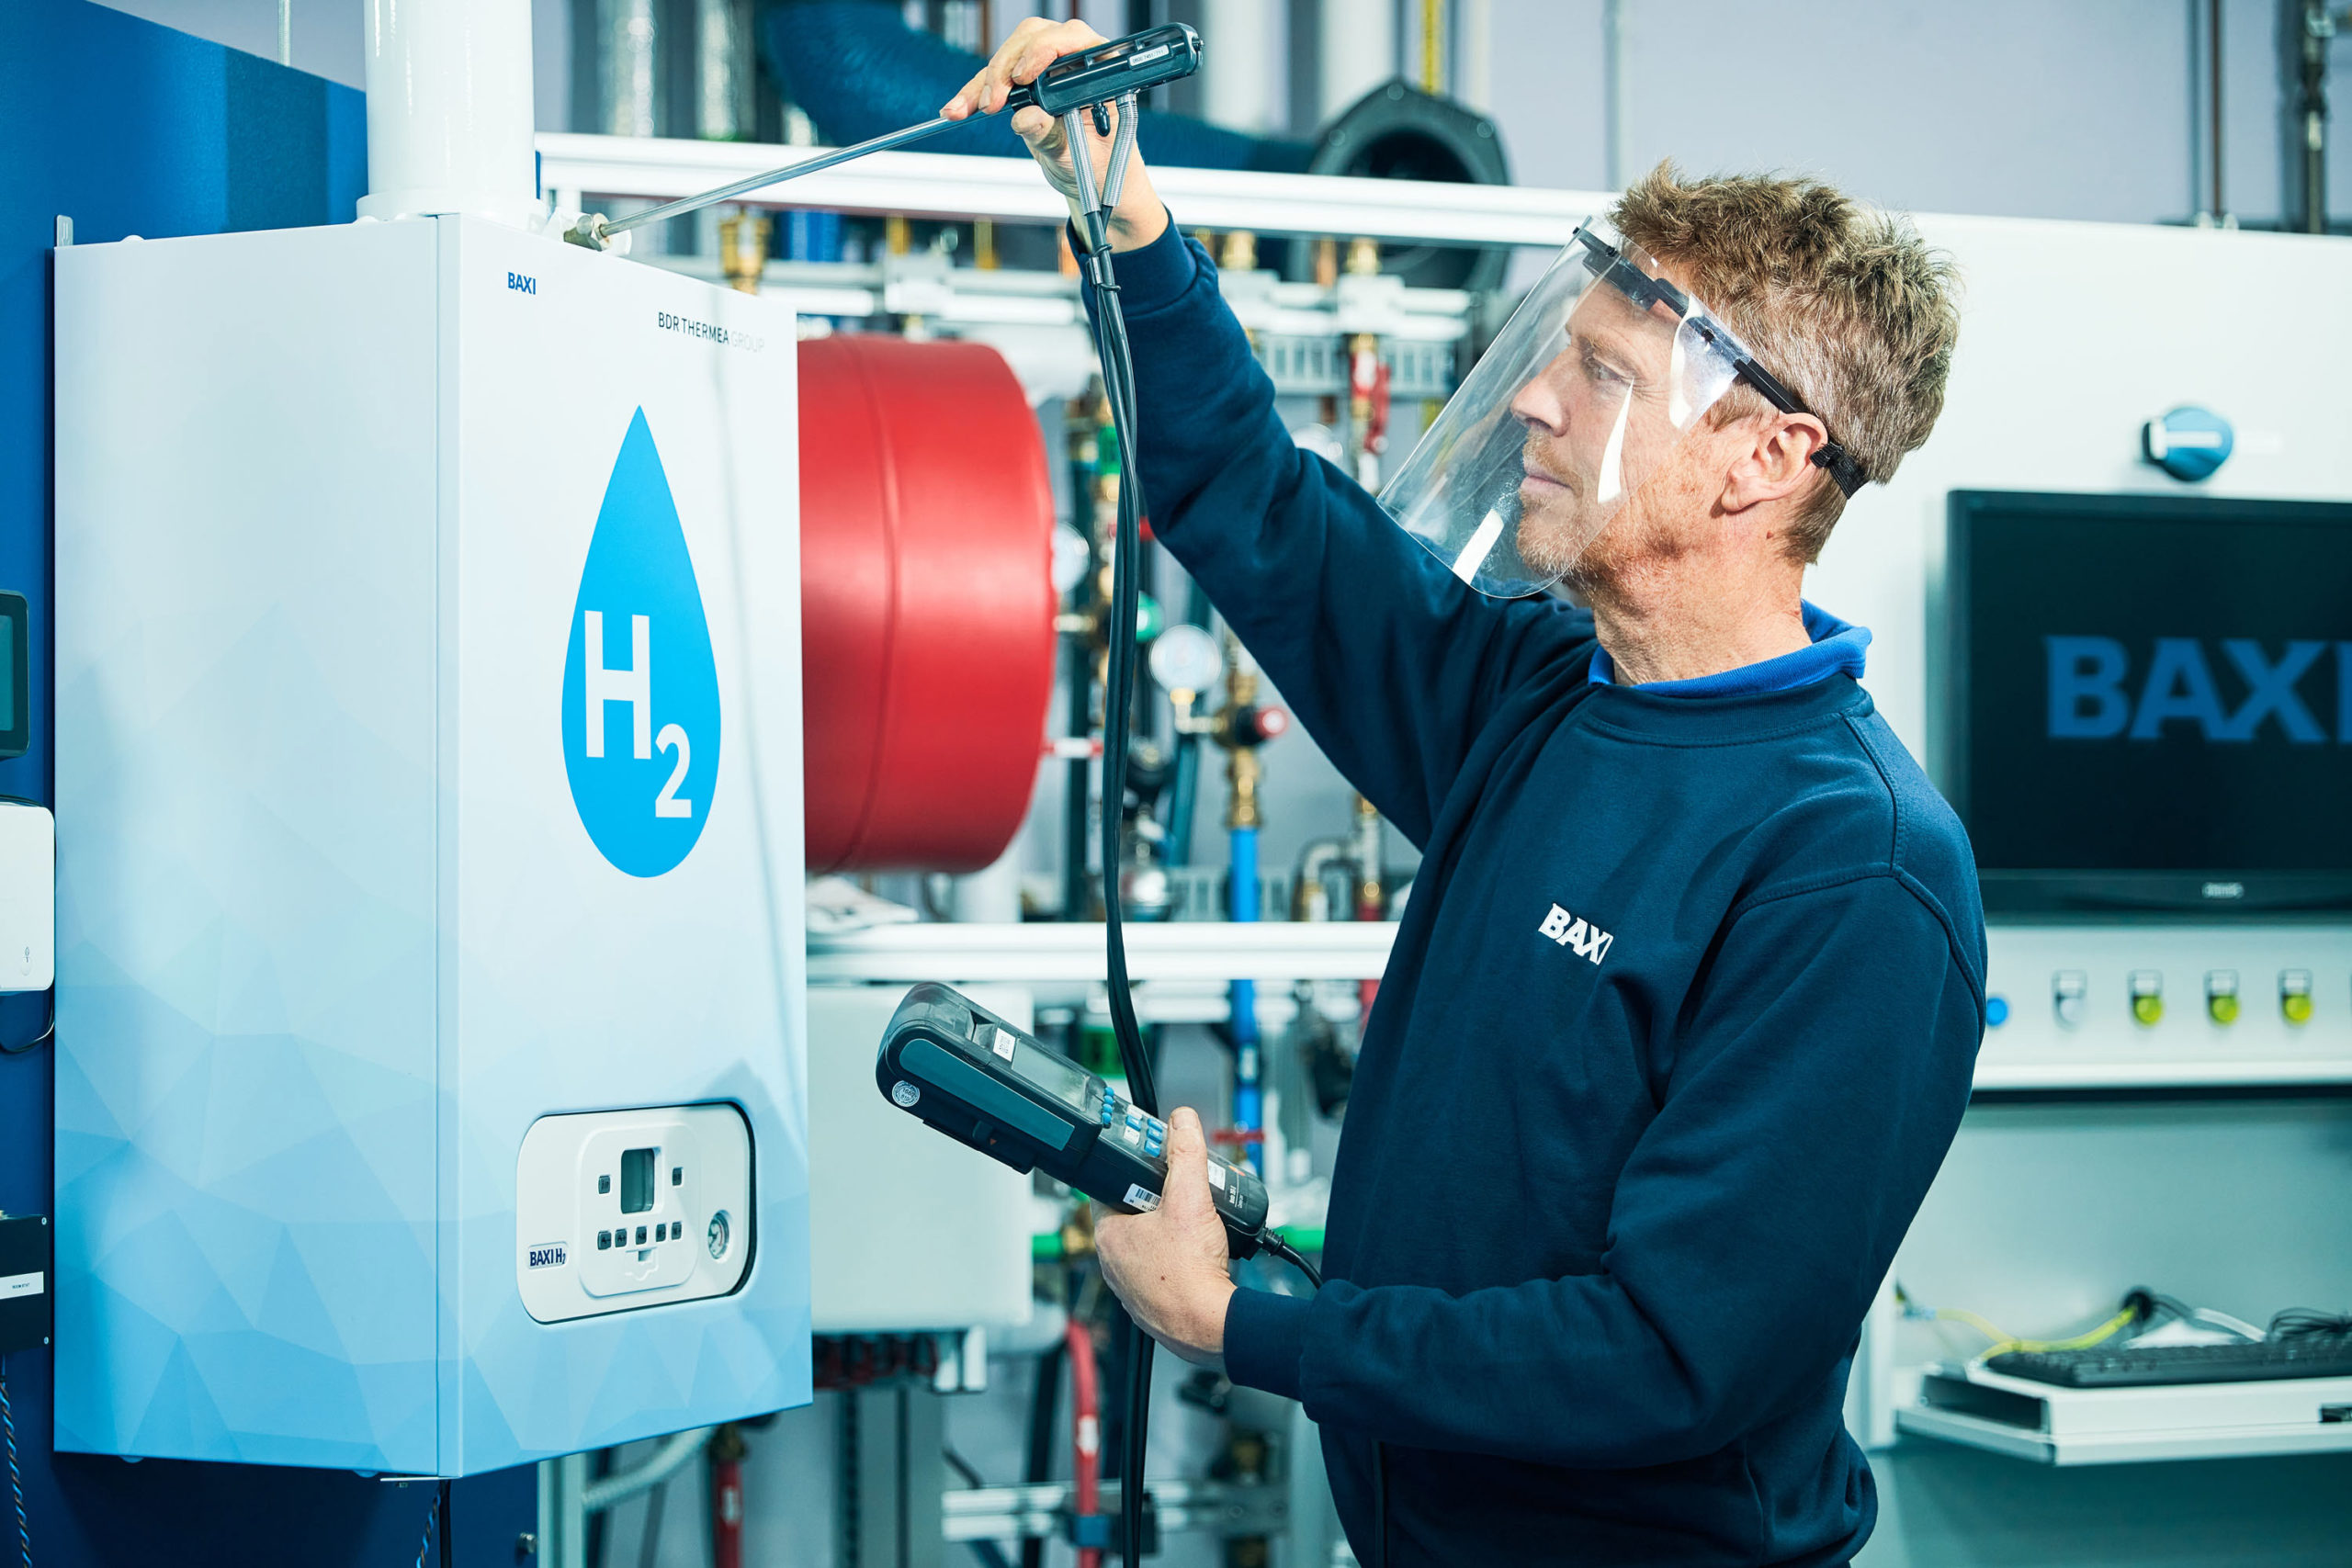 Northern Gas Networks partners BEIS and Cadent to build hydrogen houses scaled